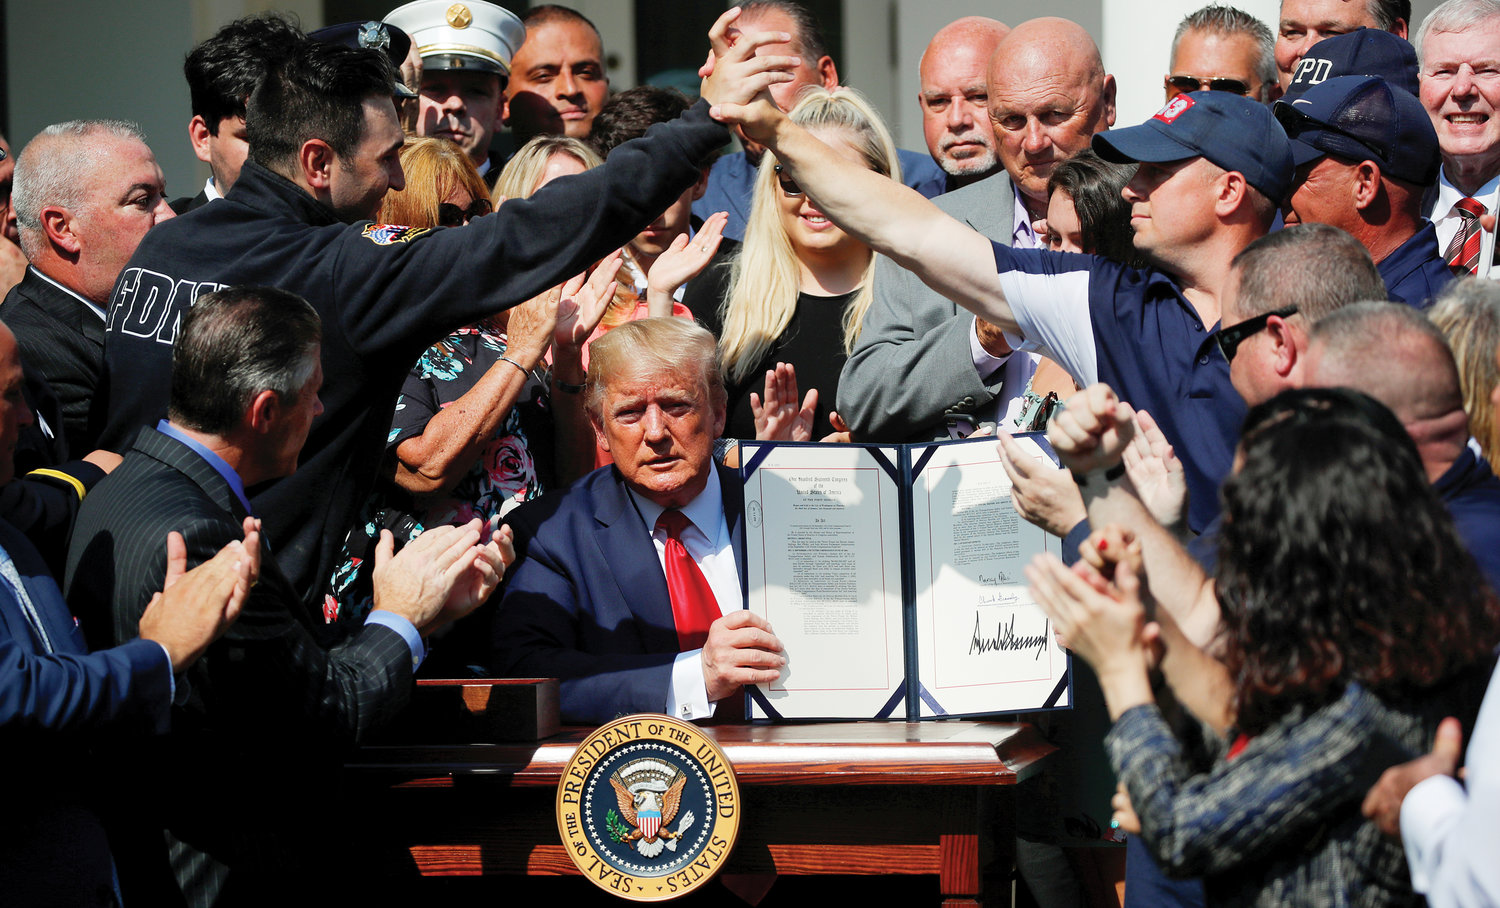 "New York City first responders celebrate as President Donald Trump displays the ""Permanent Authorization of the September 11th Victim Compensation Fund Act"" during a signing ceremony in the White House Rose Garden in Washington, D.C., July 29. Trump signed H.R. 1327 into law, making the compensation fund essentially permanent. It took nearly 18 years to get the legislation passed to benefit anyone sickened or dying from the fallout of the 9/11 terrorist attacks."